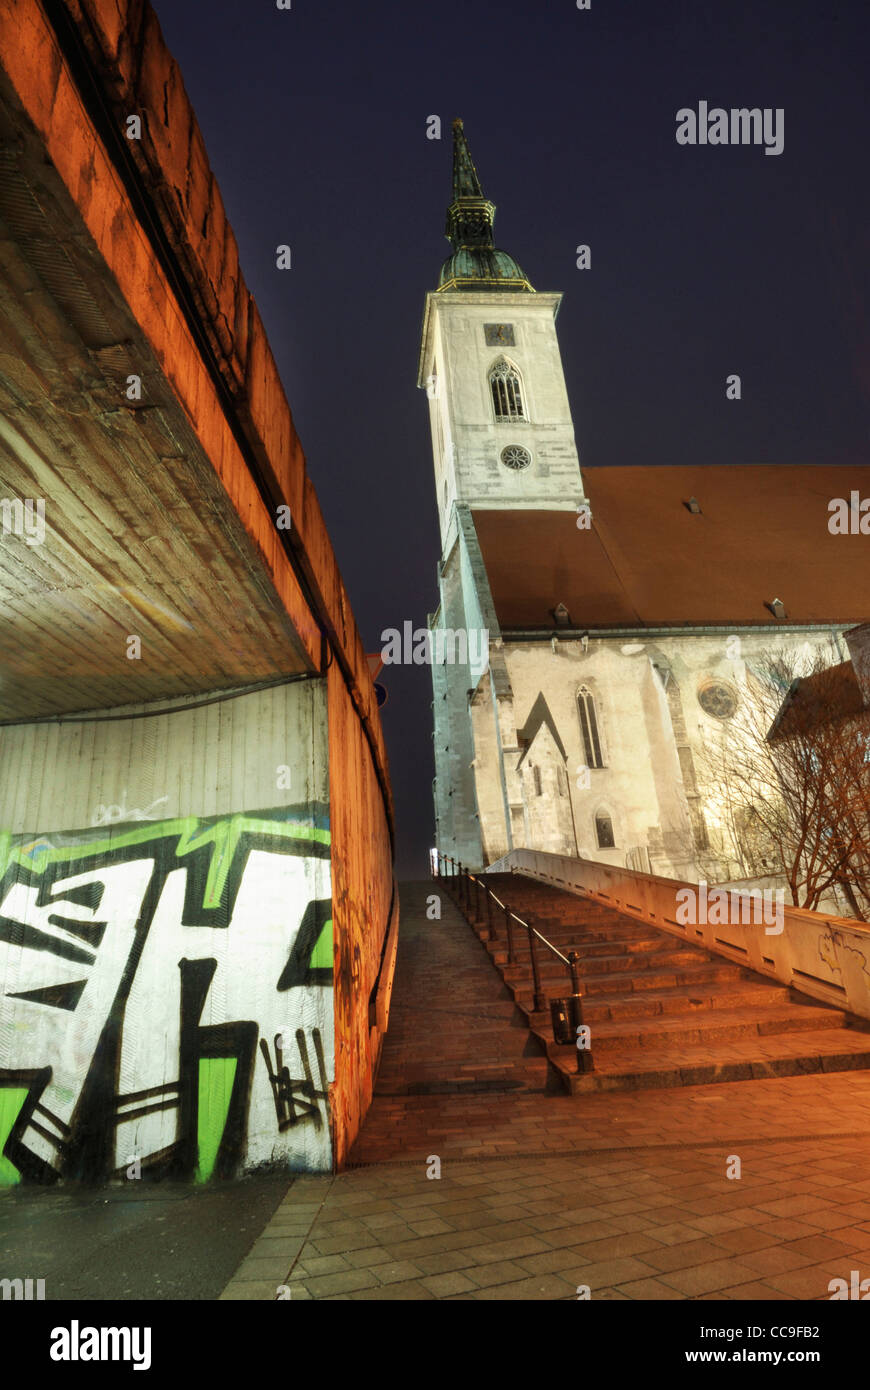 Graffitti in underpass looking up at st martins cathedral, Bratislava, Slovakia - Stock Image